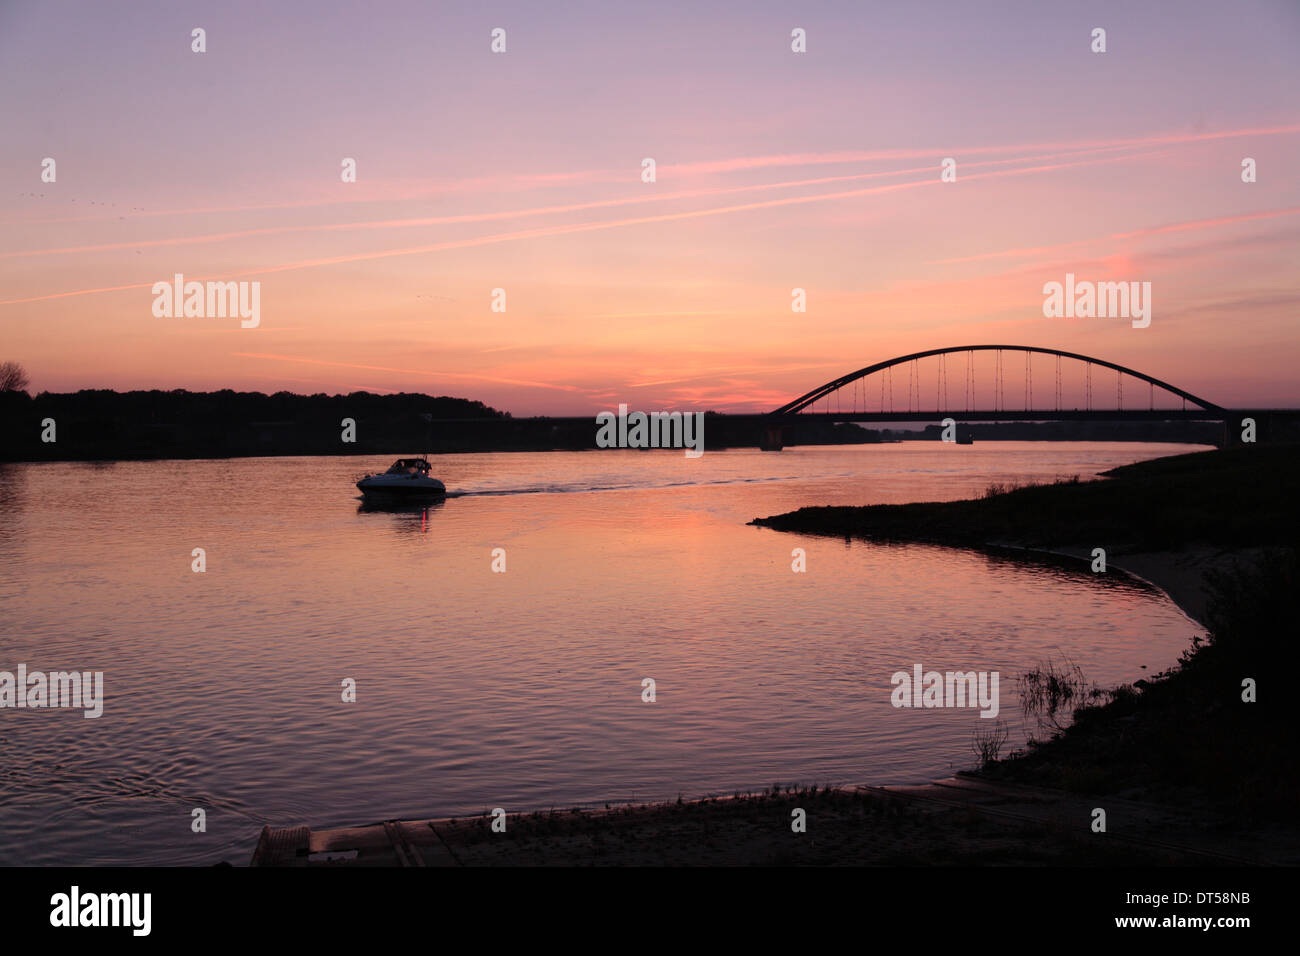 Sunset at Doemitz bridge, river Elbe, Mecklenburg Western Pomerania, Germany, Europe - Stock Image